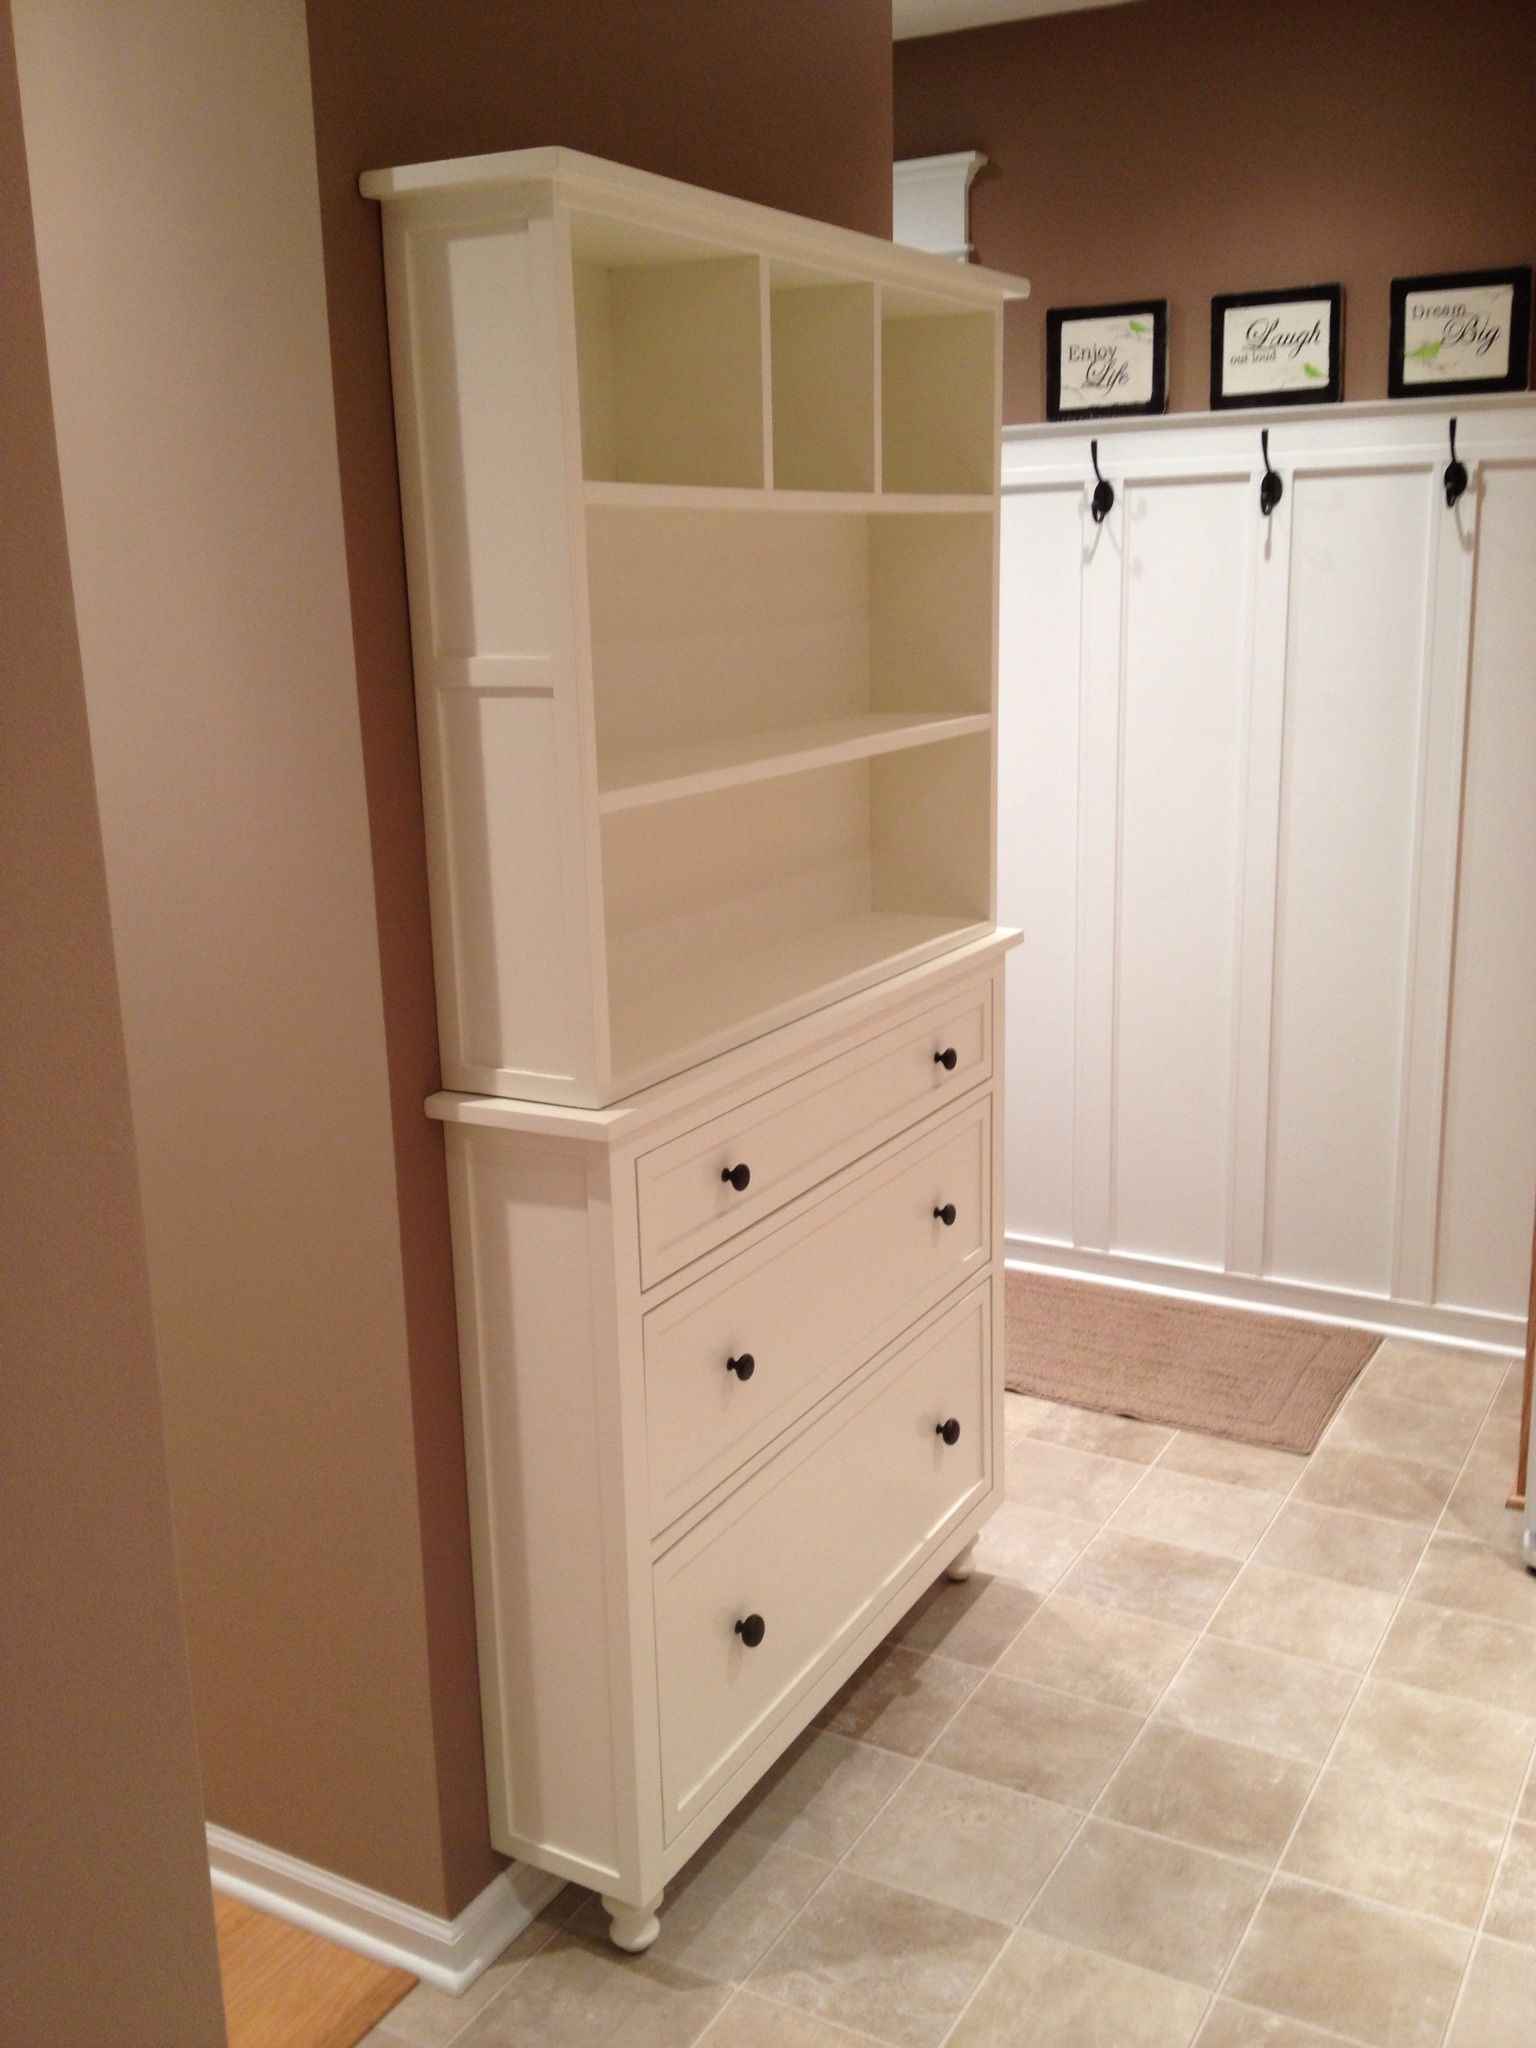 Pin by michele lascio on mudroom kreg jig projects diy - Shallow dressers for small spaces ...